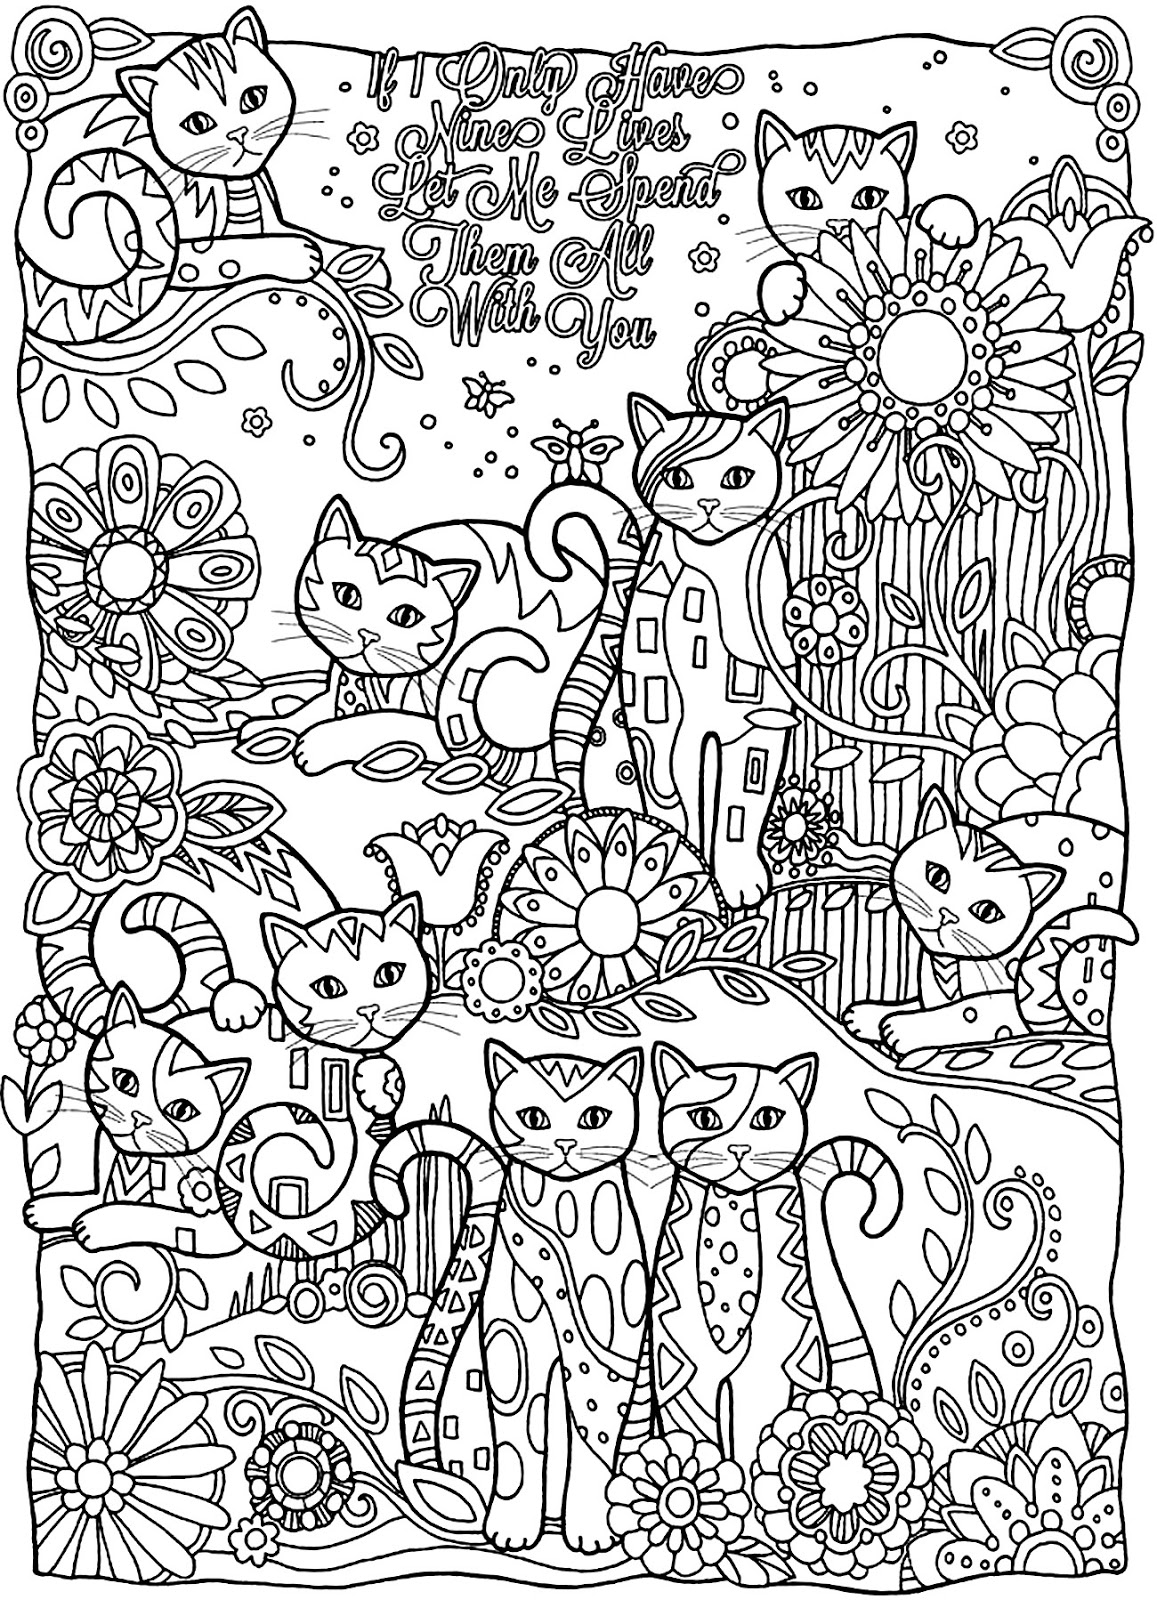 httpwwwcoloring pages adultscomcoloring animals insectsnggallerypage 2imageinsectes__coloring adult cats cutes__1 - Detailed Coloring Pages 2